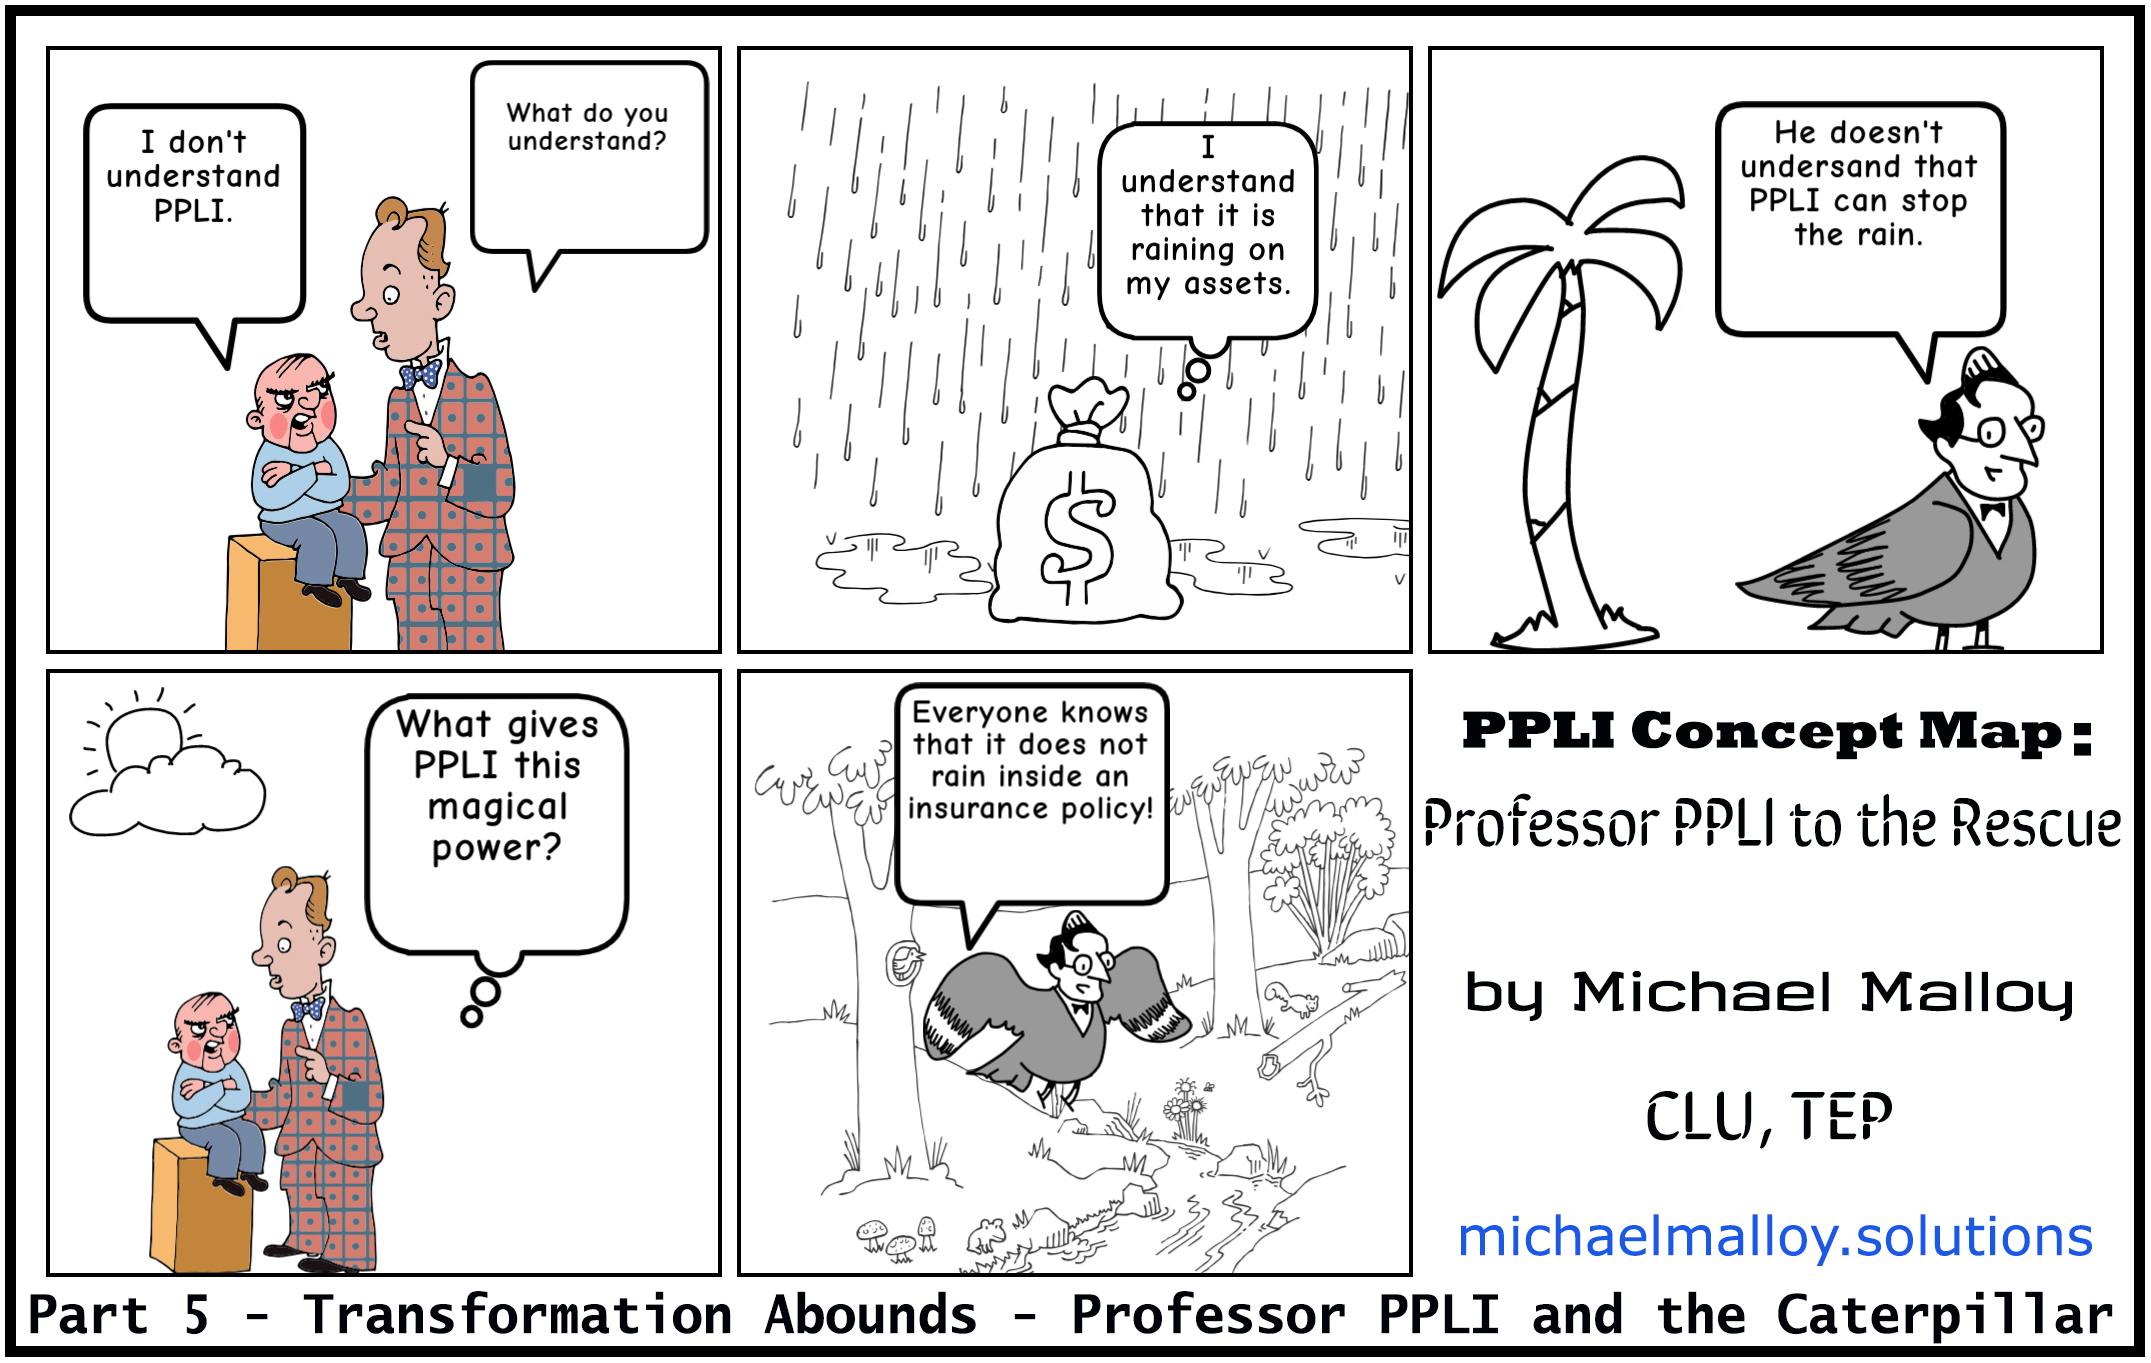 Part 5 - Transformation Abounds - Professor PPLI and the Caterpillar